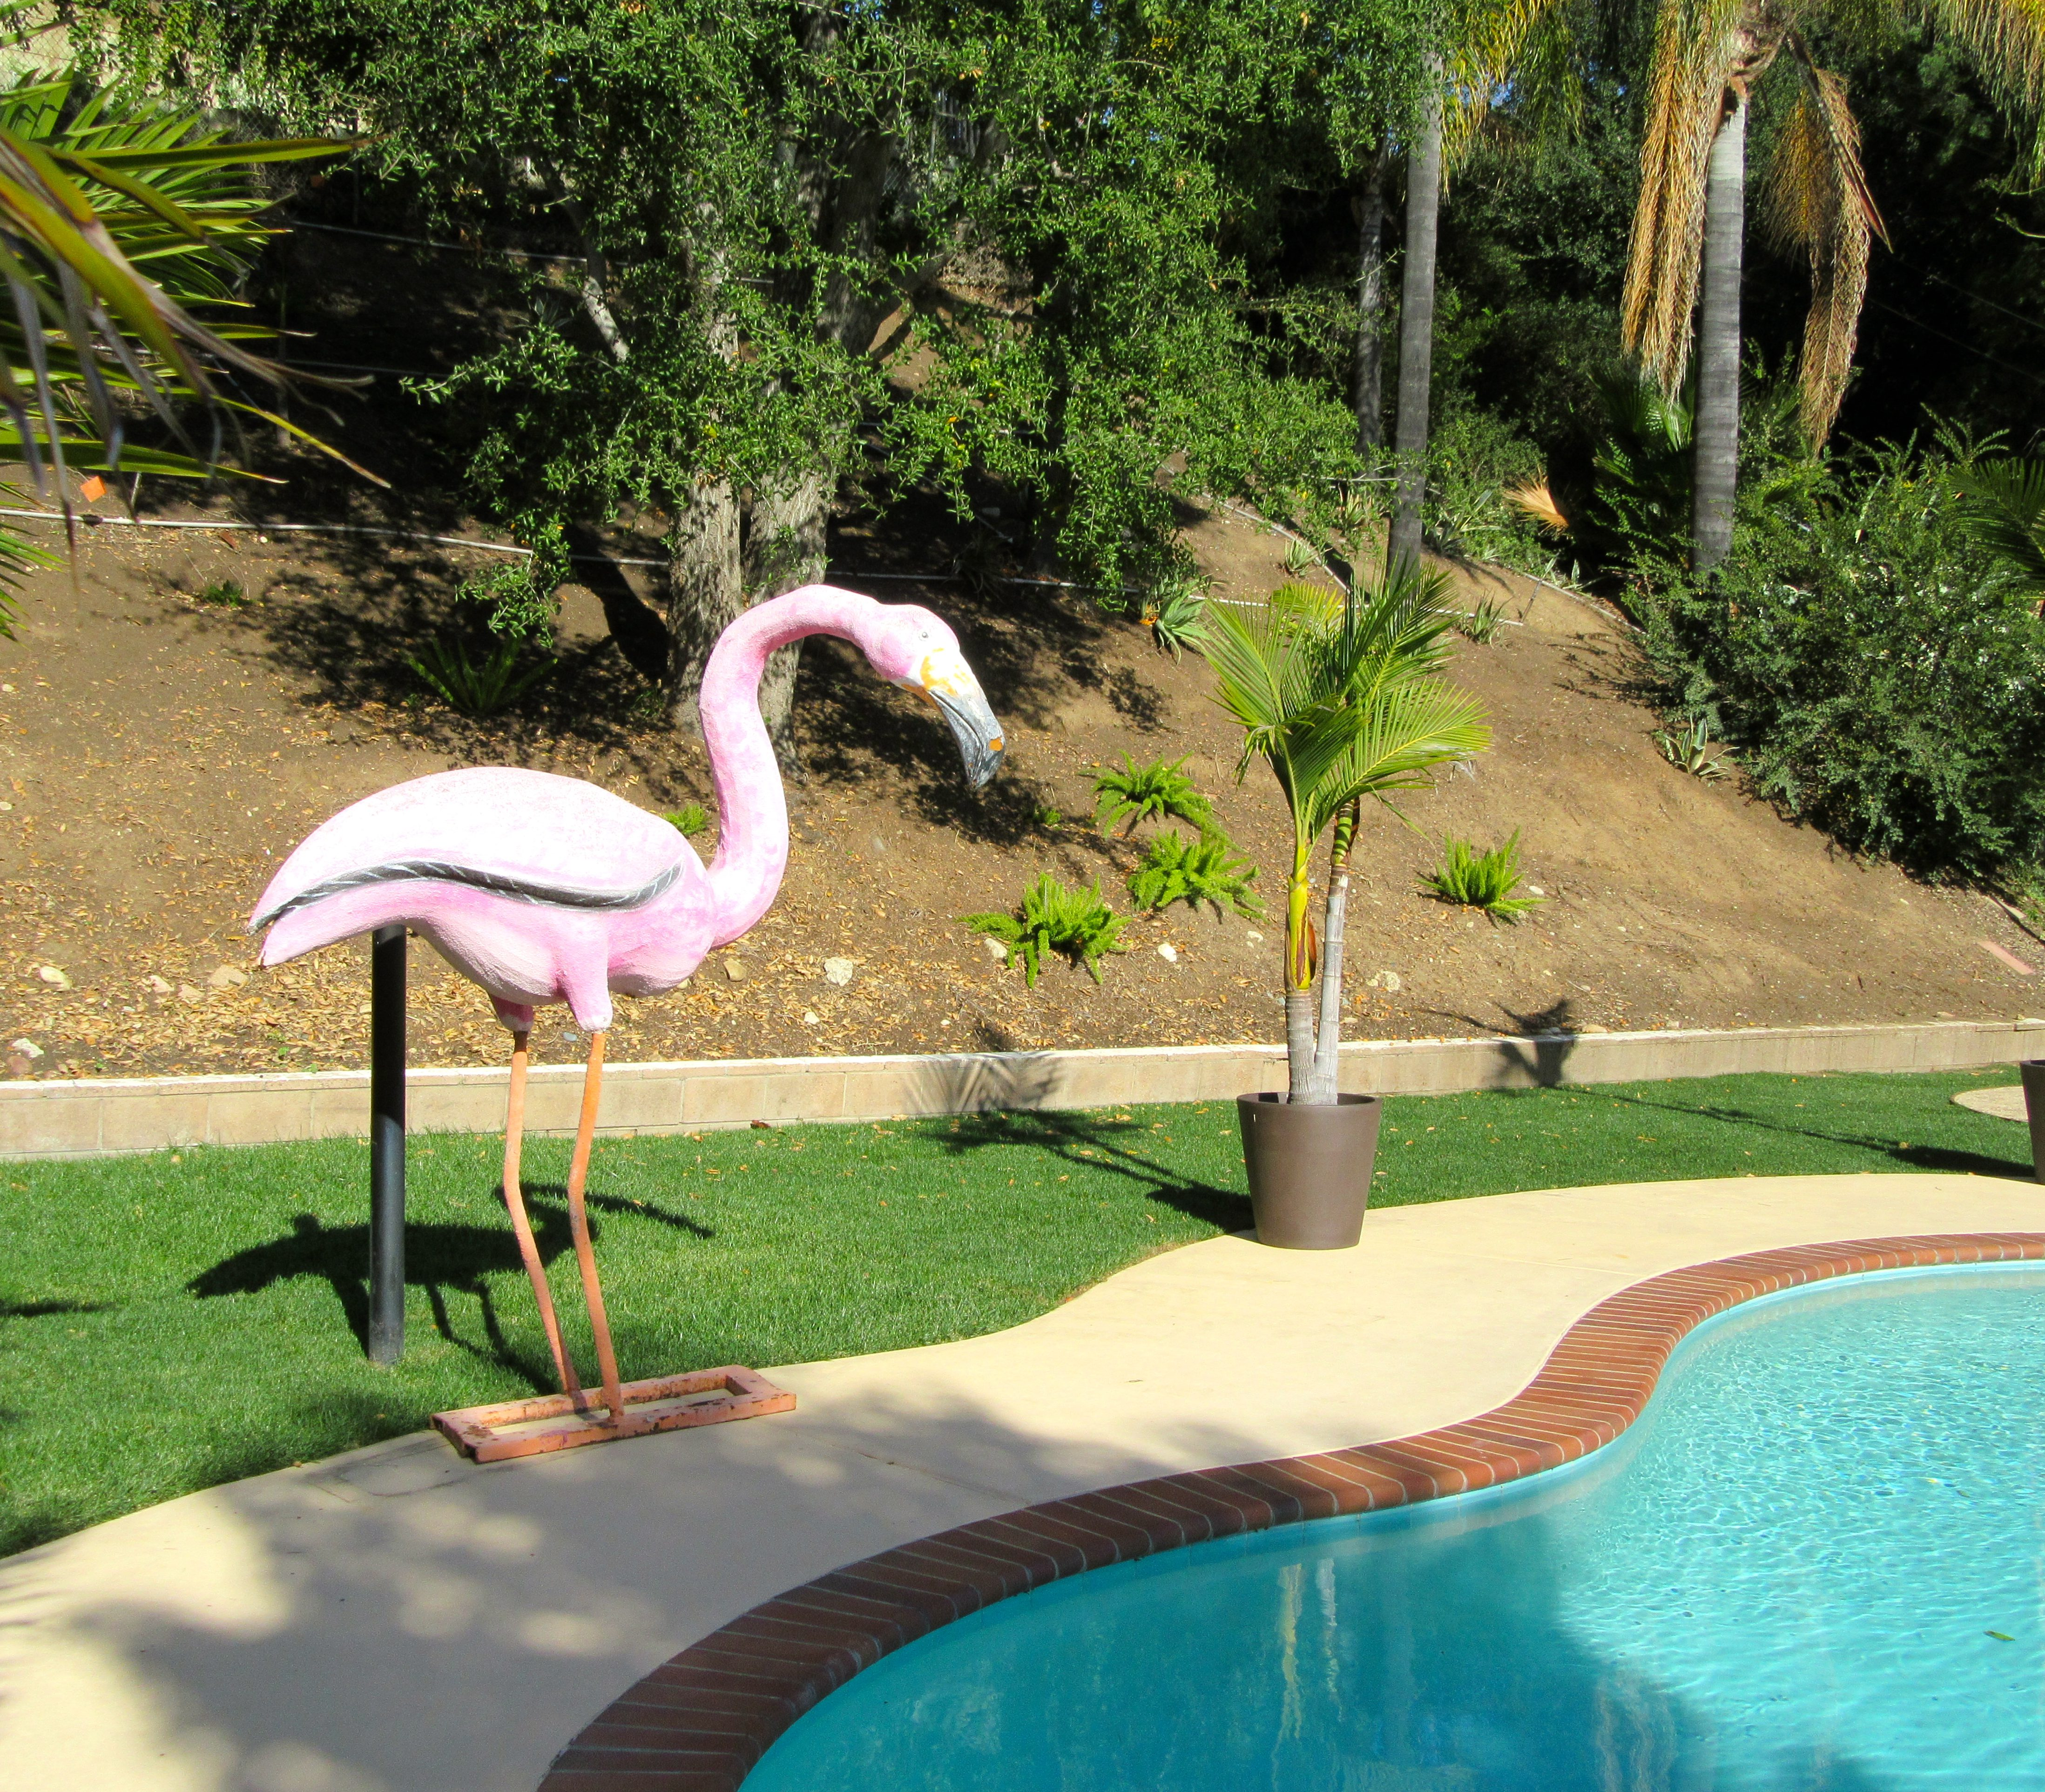 Flamingo Pool Dates Pink Thing Of The Day Pink Flamingo Pool Statue The